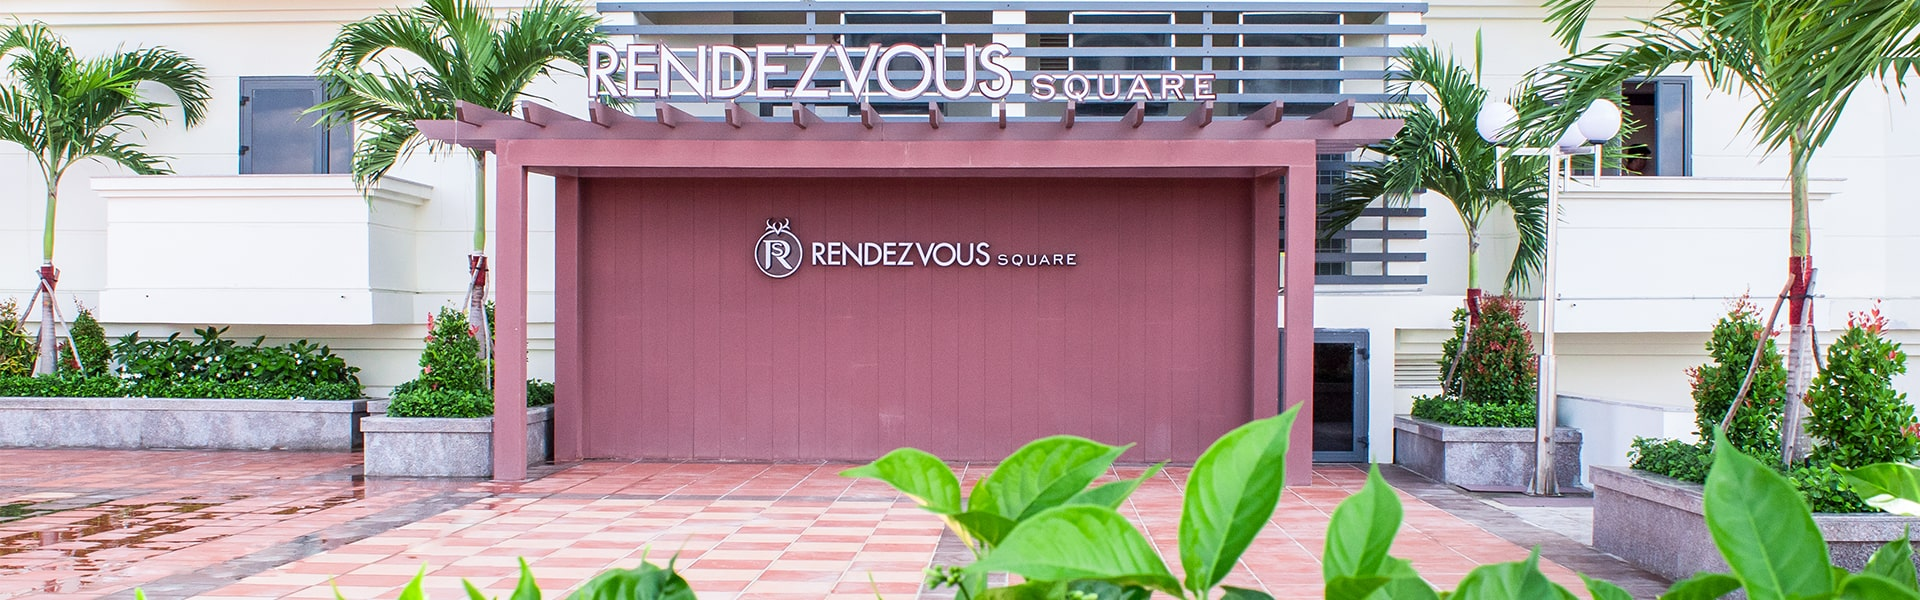 Rendezvous-Square-Header